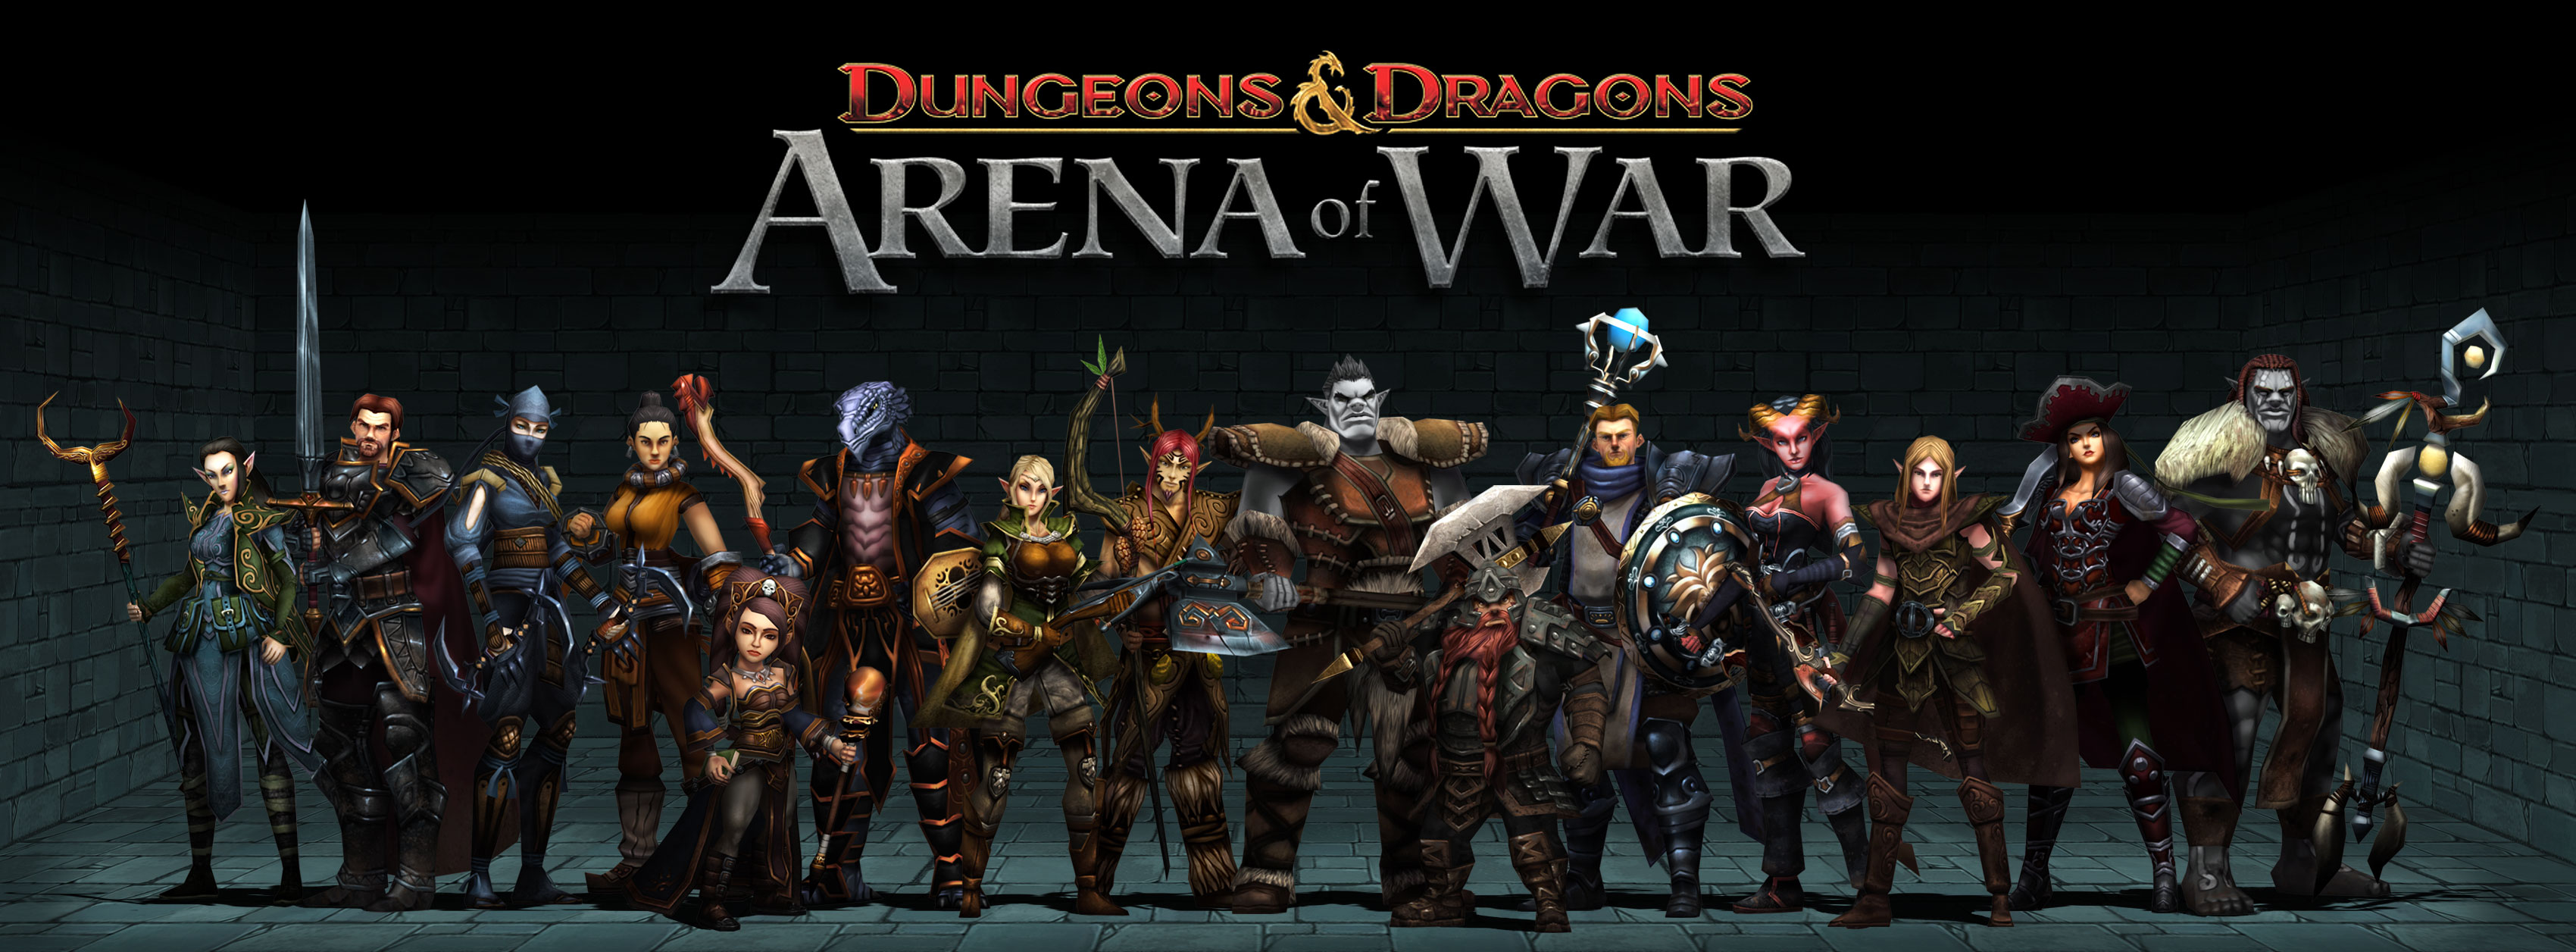 Dungeons-and-Dragons-Arena-of-War-06